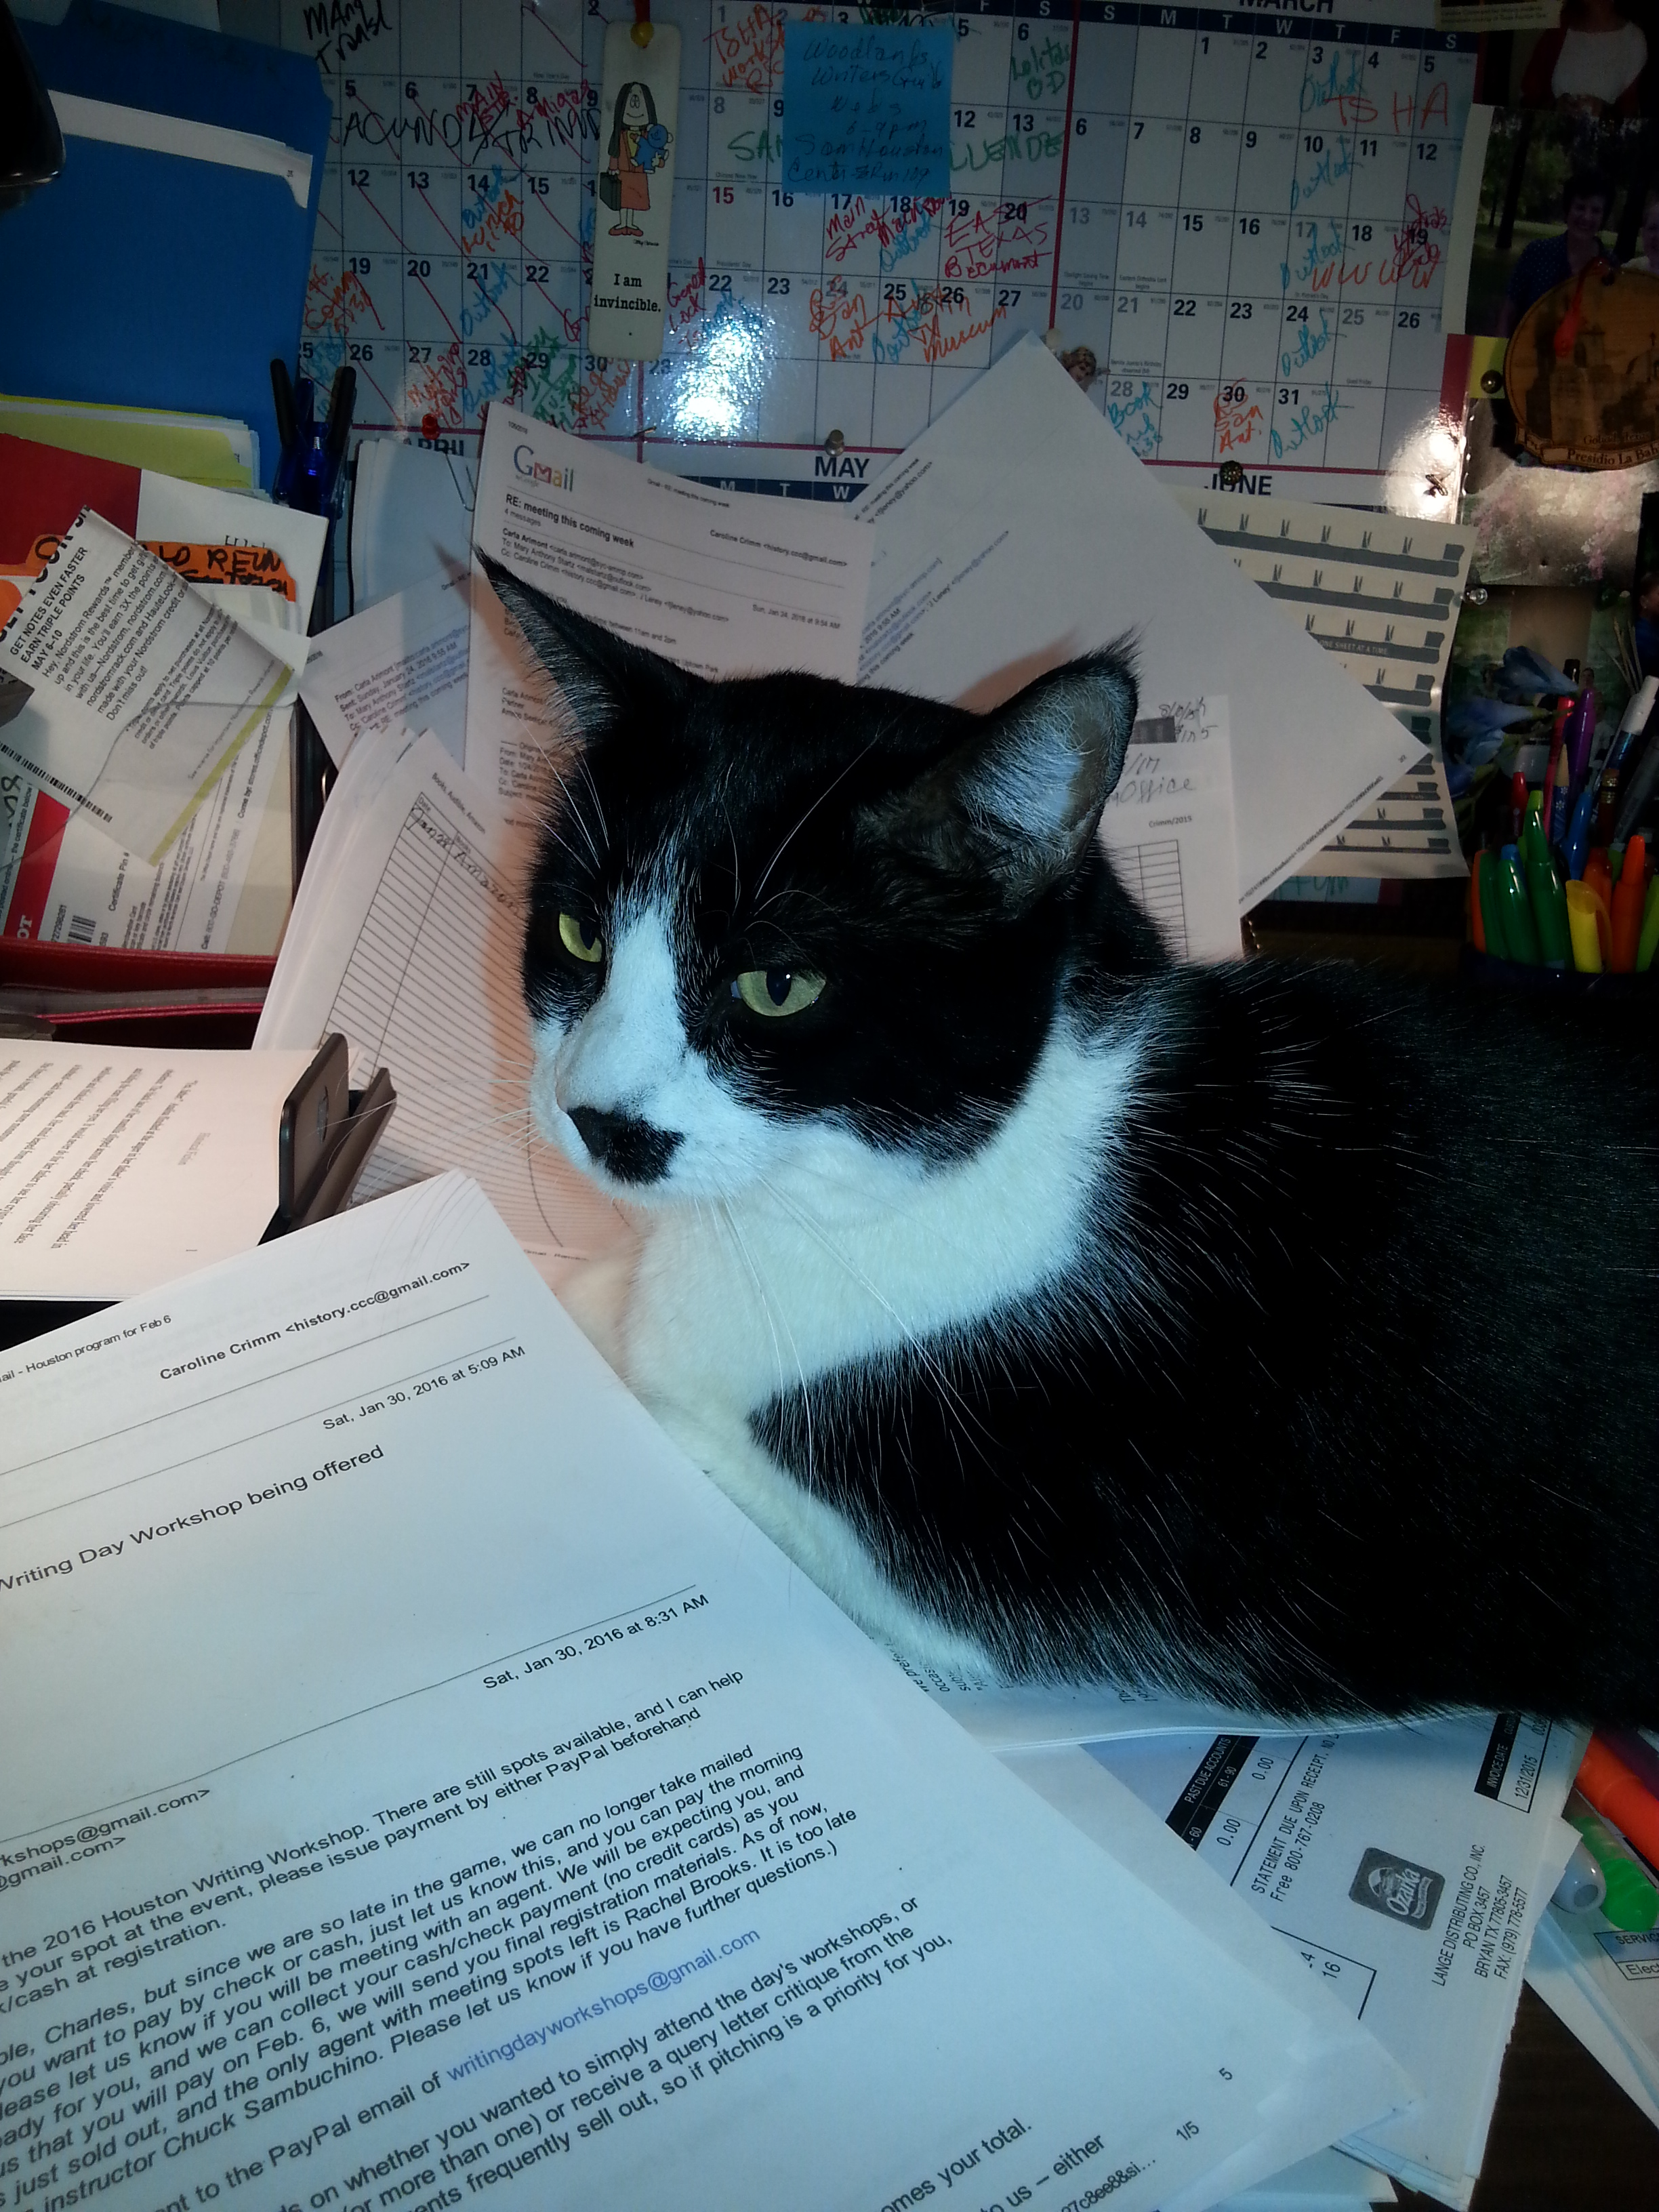 the pros and cons of conferences and conventions carolina helping out with taxes cats and taxes